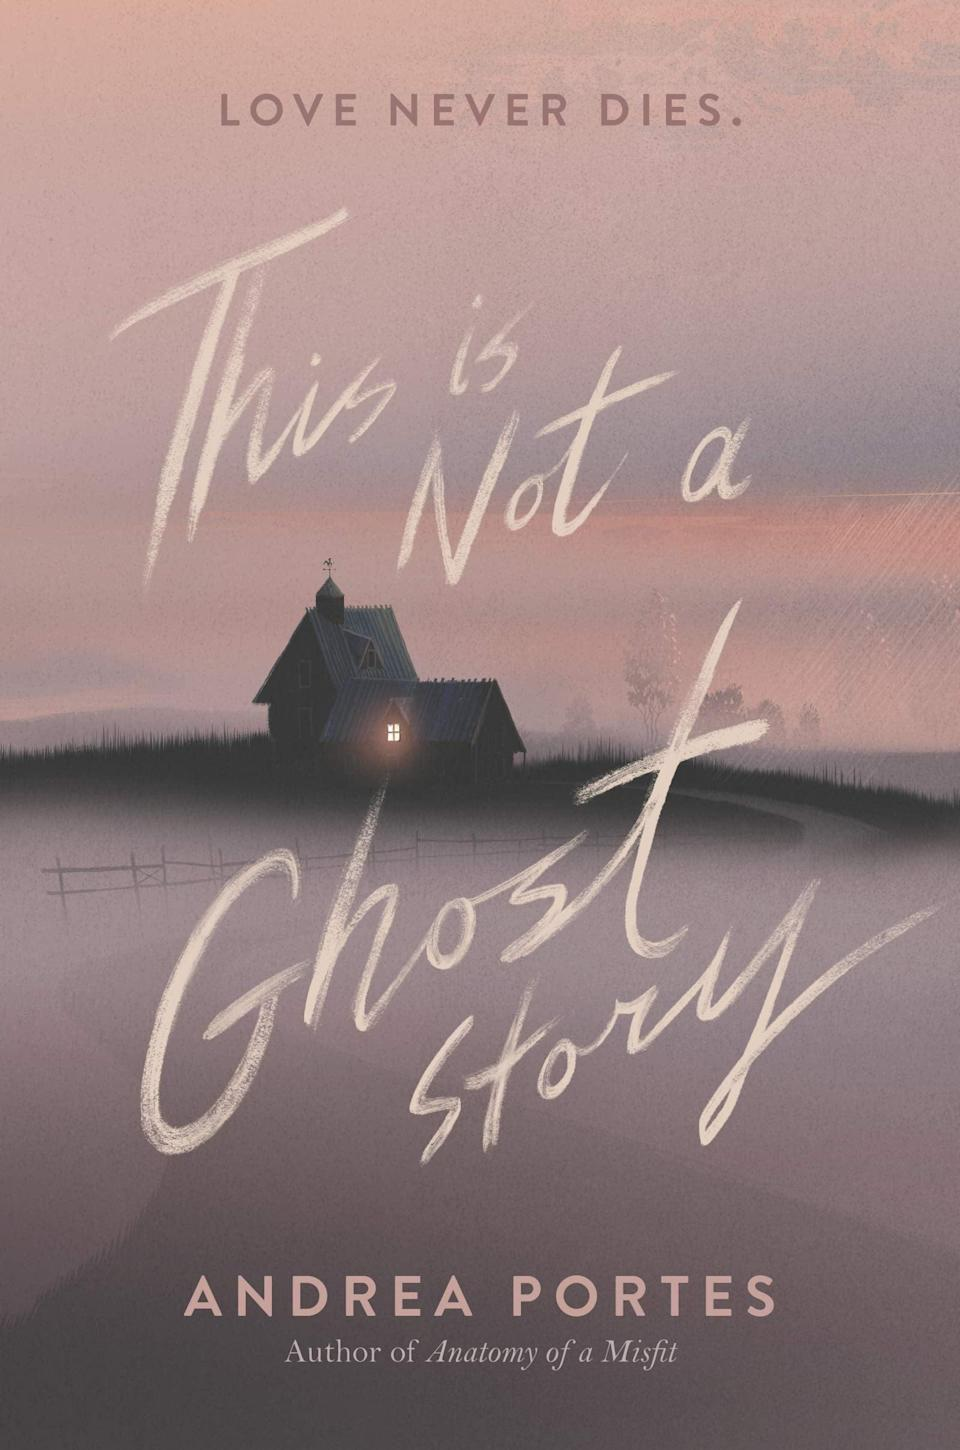 <p><span><b>This Is Not a Ghost Story</b></span> by Andrea Portes is a creepy, twist-filled story with a central message that appears to be beware of any job that sounds too good to be true. During the summer before college, Daffodil Franklin lands a job housesitting a mansion for a wealthy couple, but it doesn't take long for her to realize there's someone or something that doesn't want her in the house. </p> <p><em>Out Nov. 17</em></p>